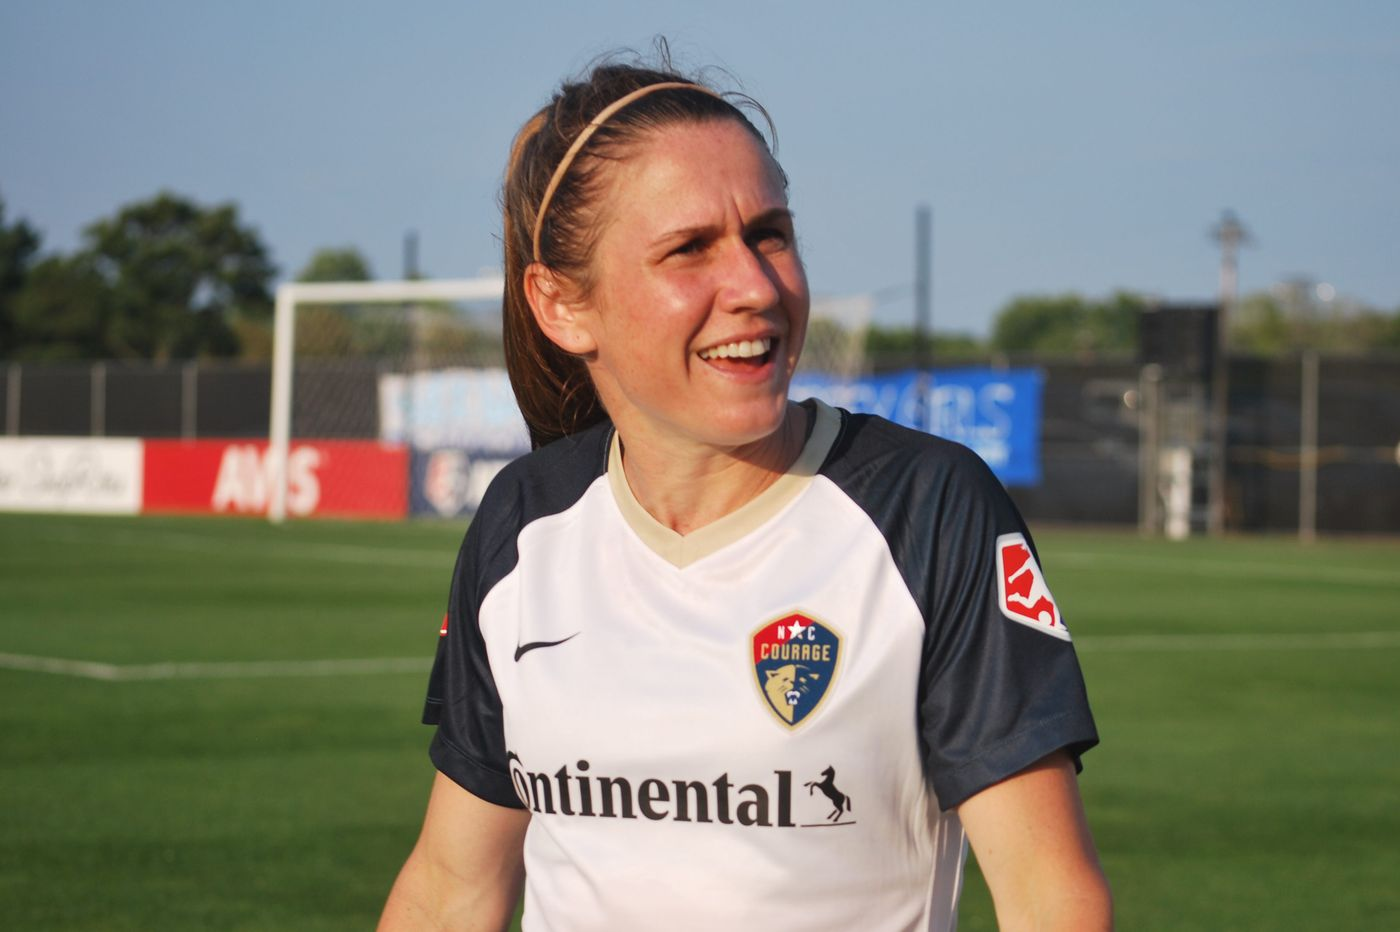 Soccer star Heather O'Reilly back home and happy to just fit in